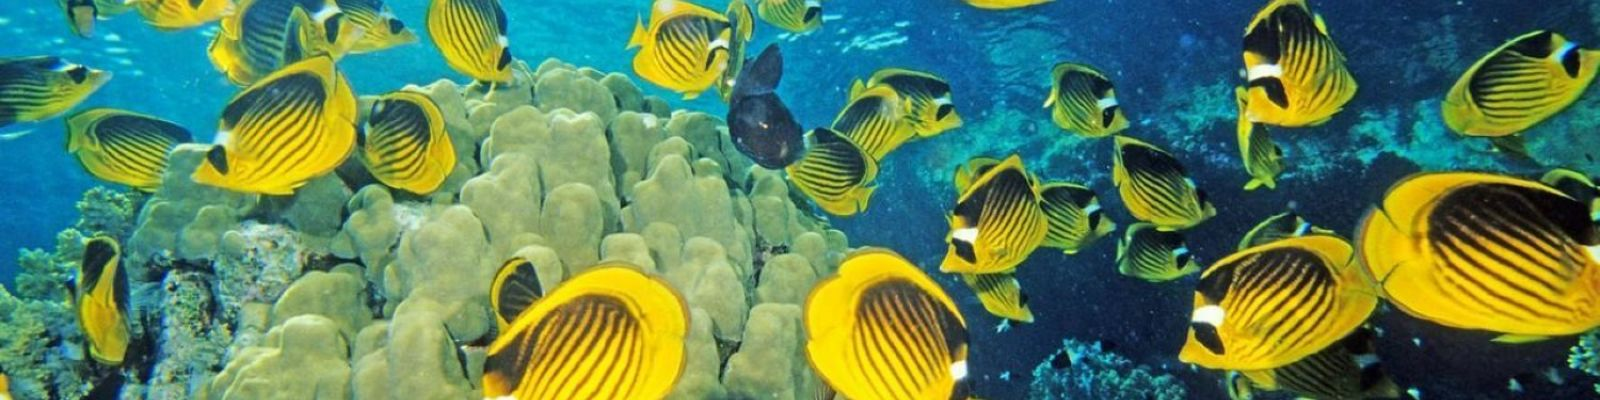 red sea racoon butterflyfish ocean coral 1600x1200 hd-wallpaper-754197